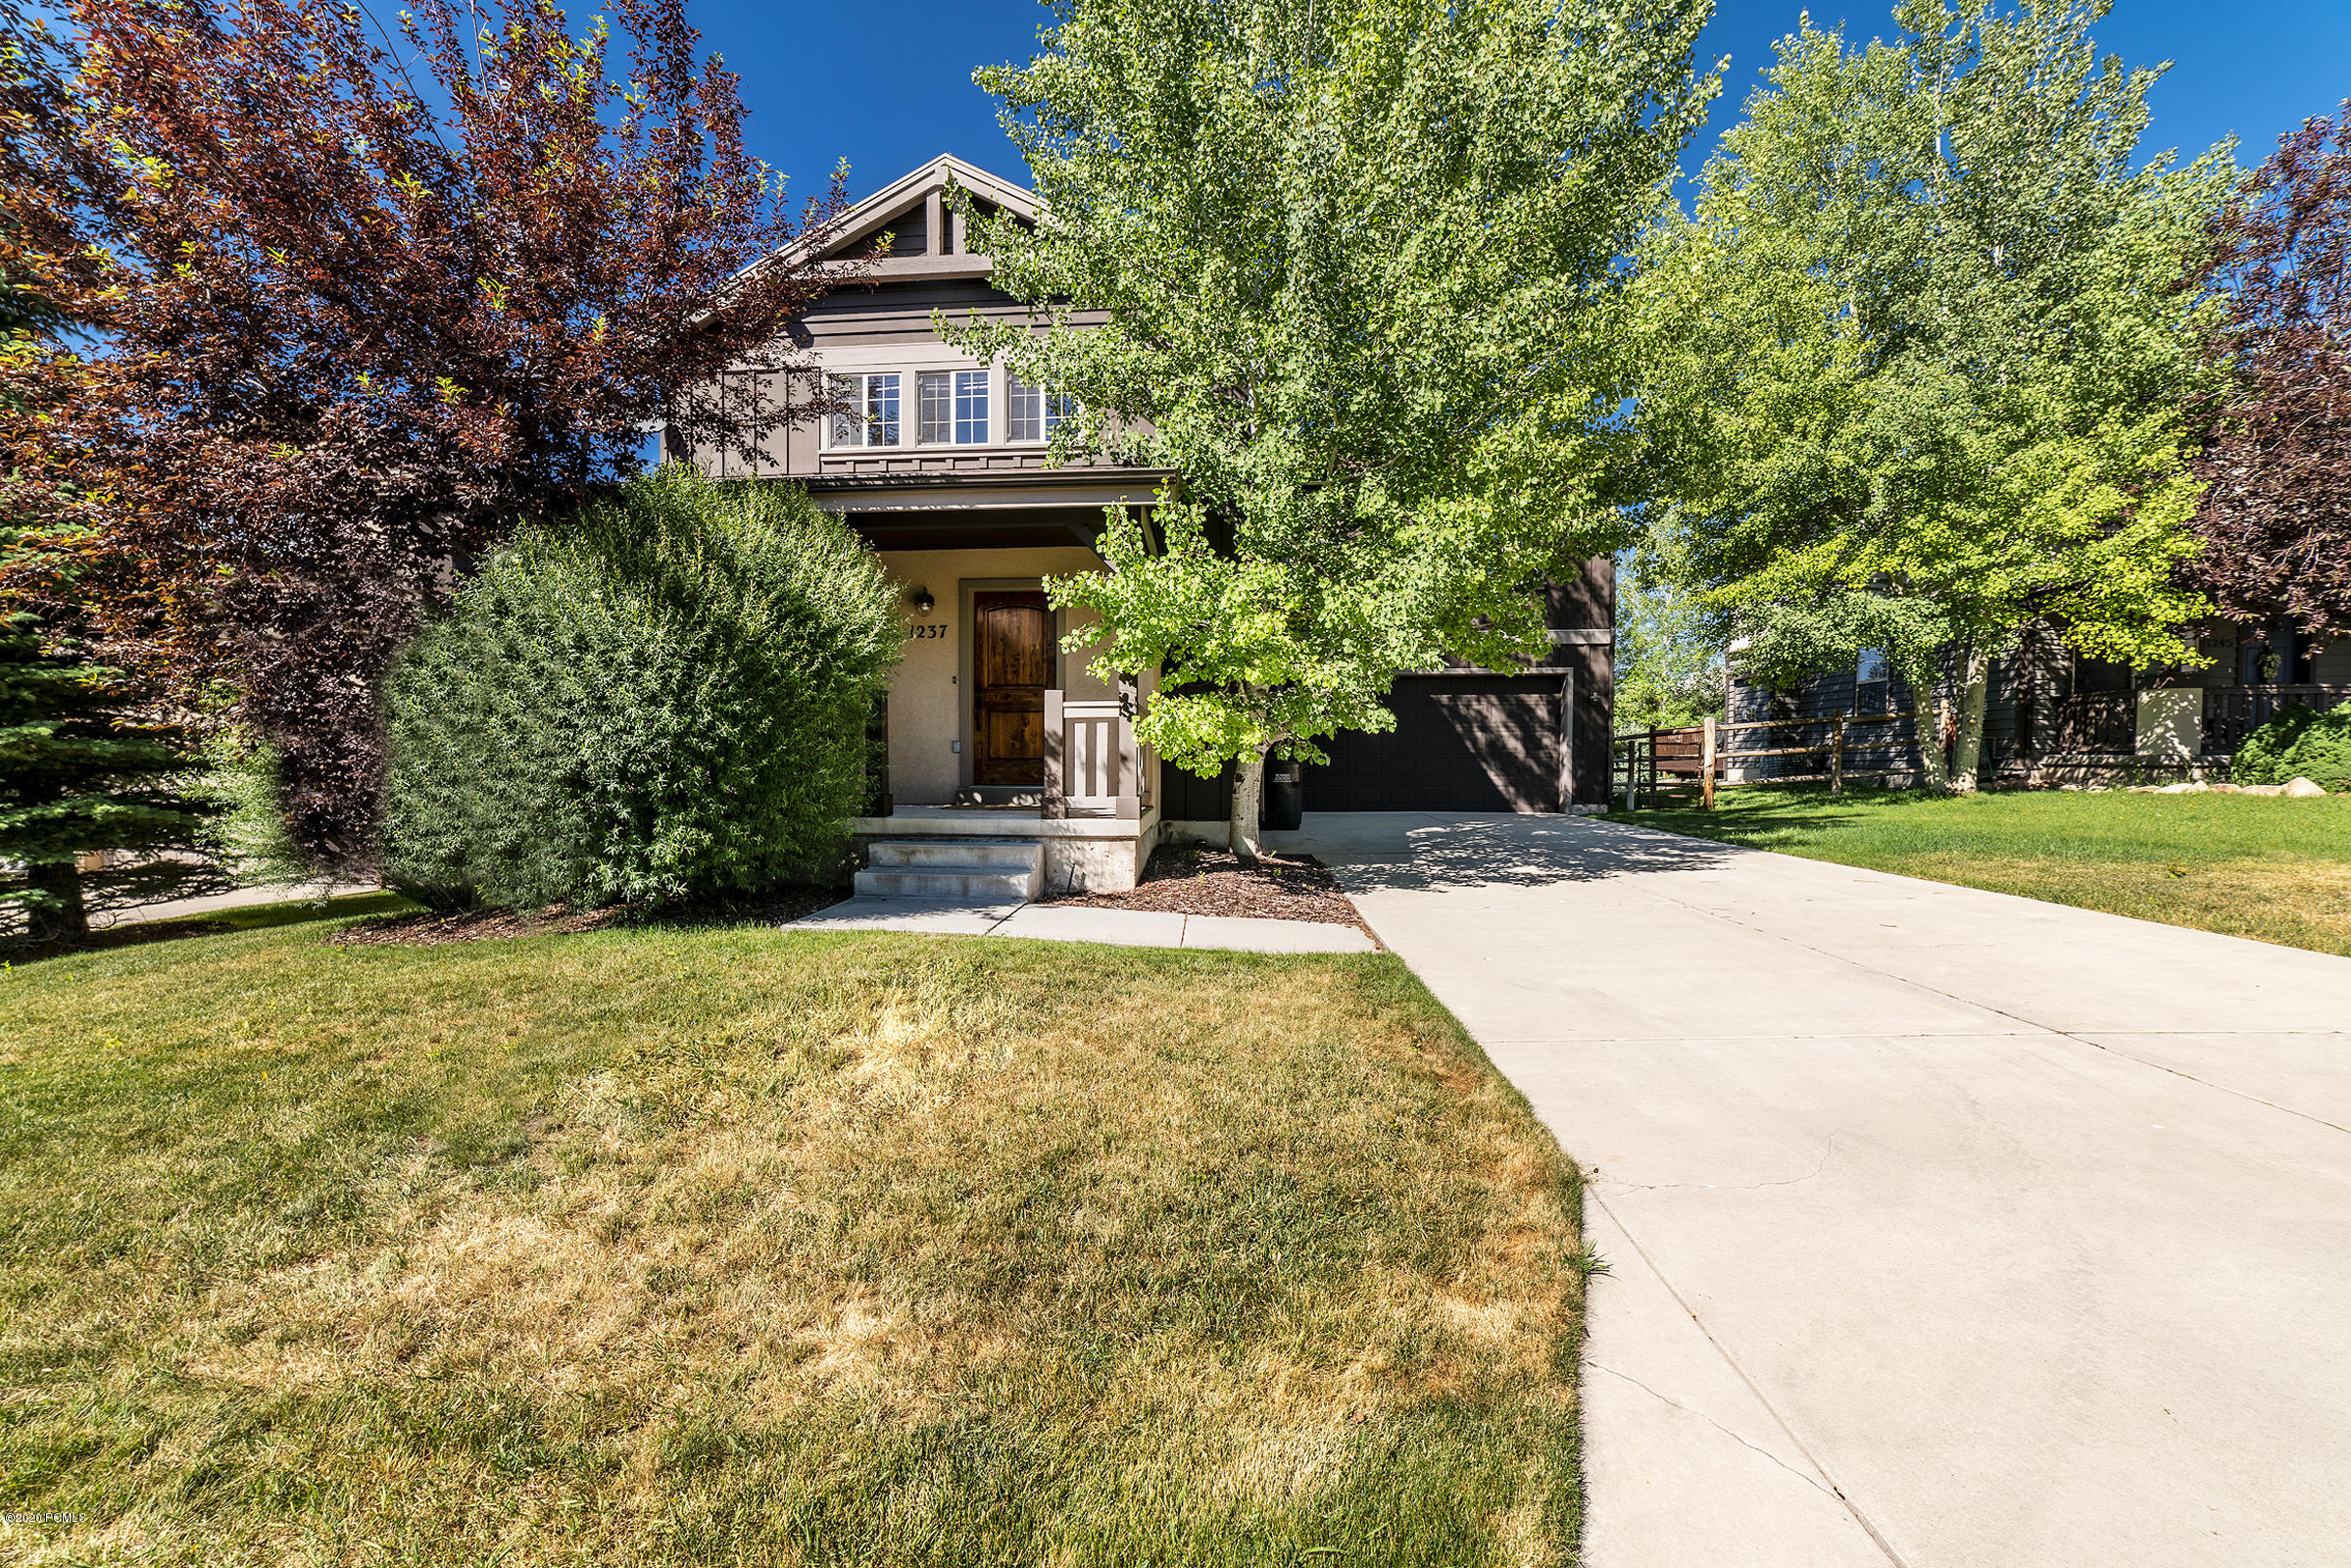 1237 Foxcrest Drive, Park City, Utah 84098, 3 Bedrooms Bedrooms, ,3 BathroomsBathrooms,Single Family,For Sale,Foxcrest,12003304